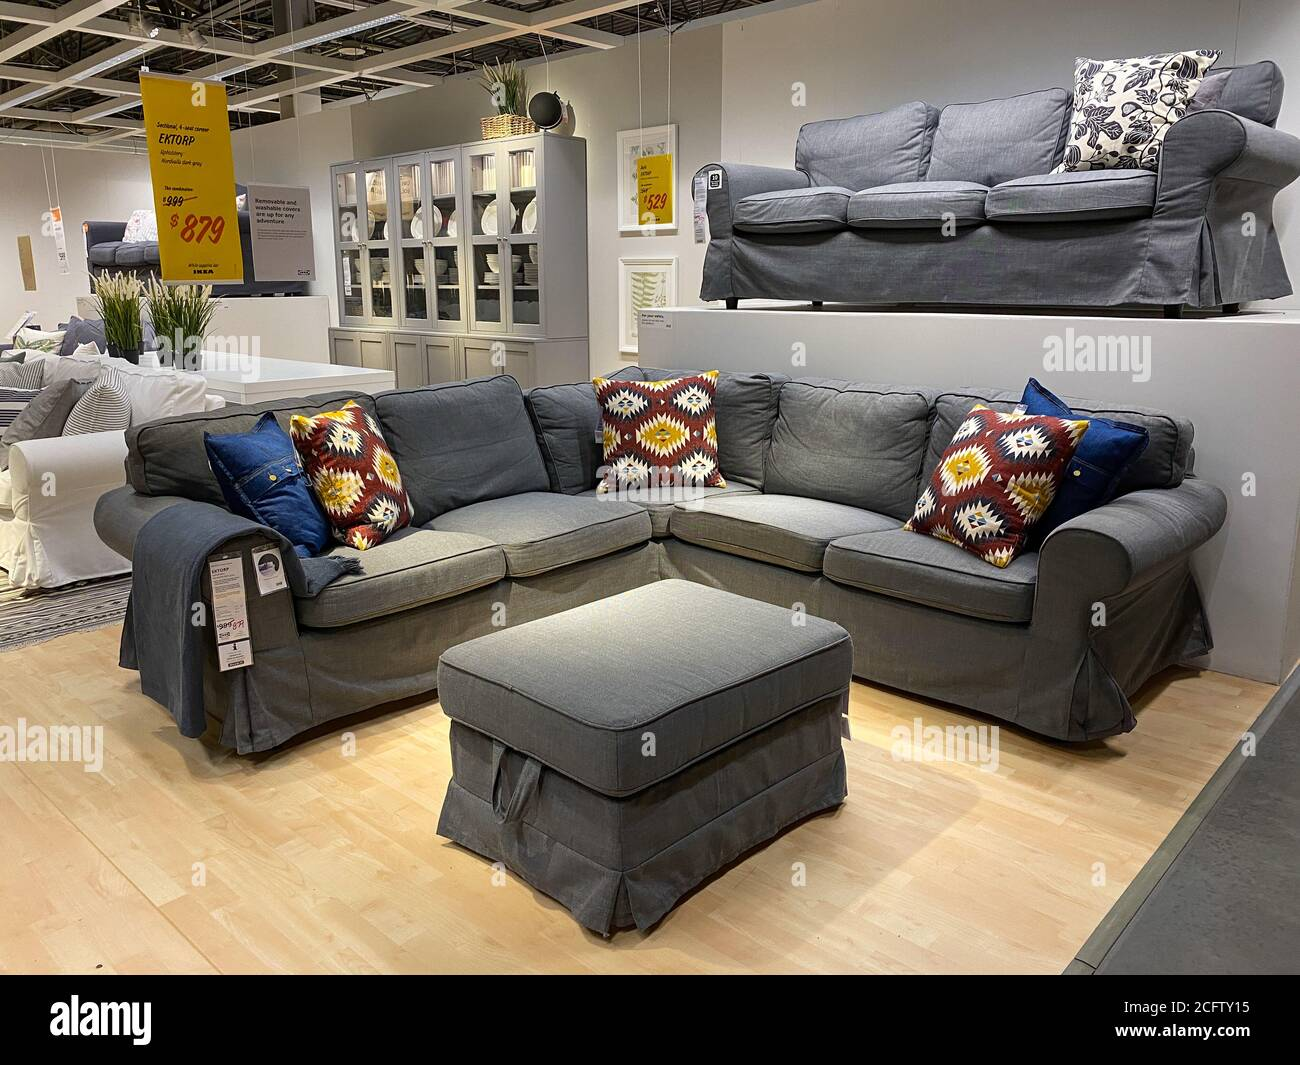 Sofa In Furniture Store High Resolution Stock Photography And Images Alamy